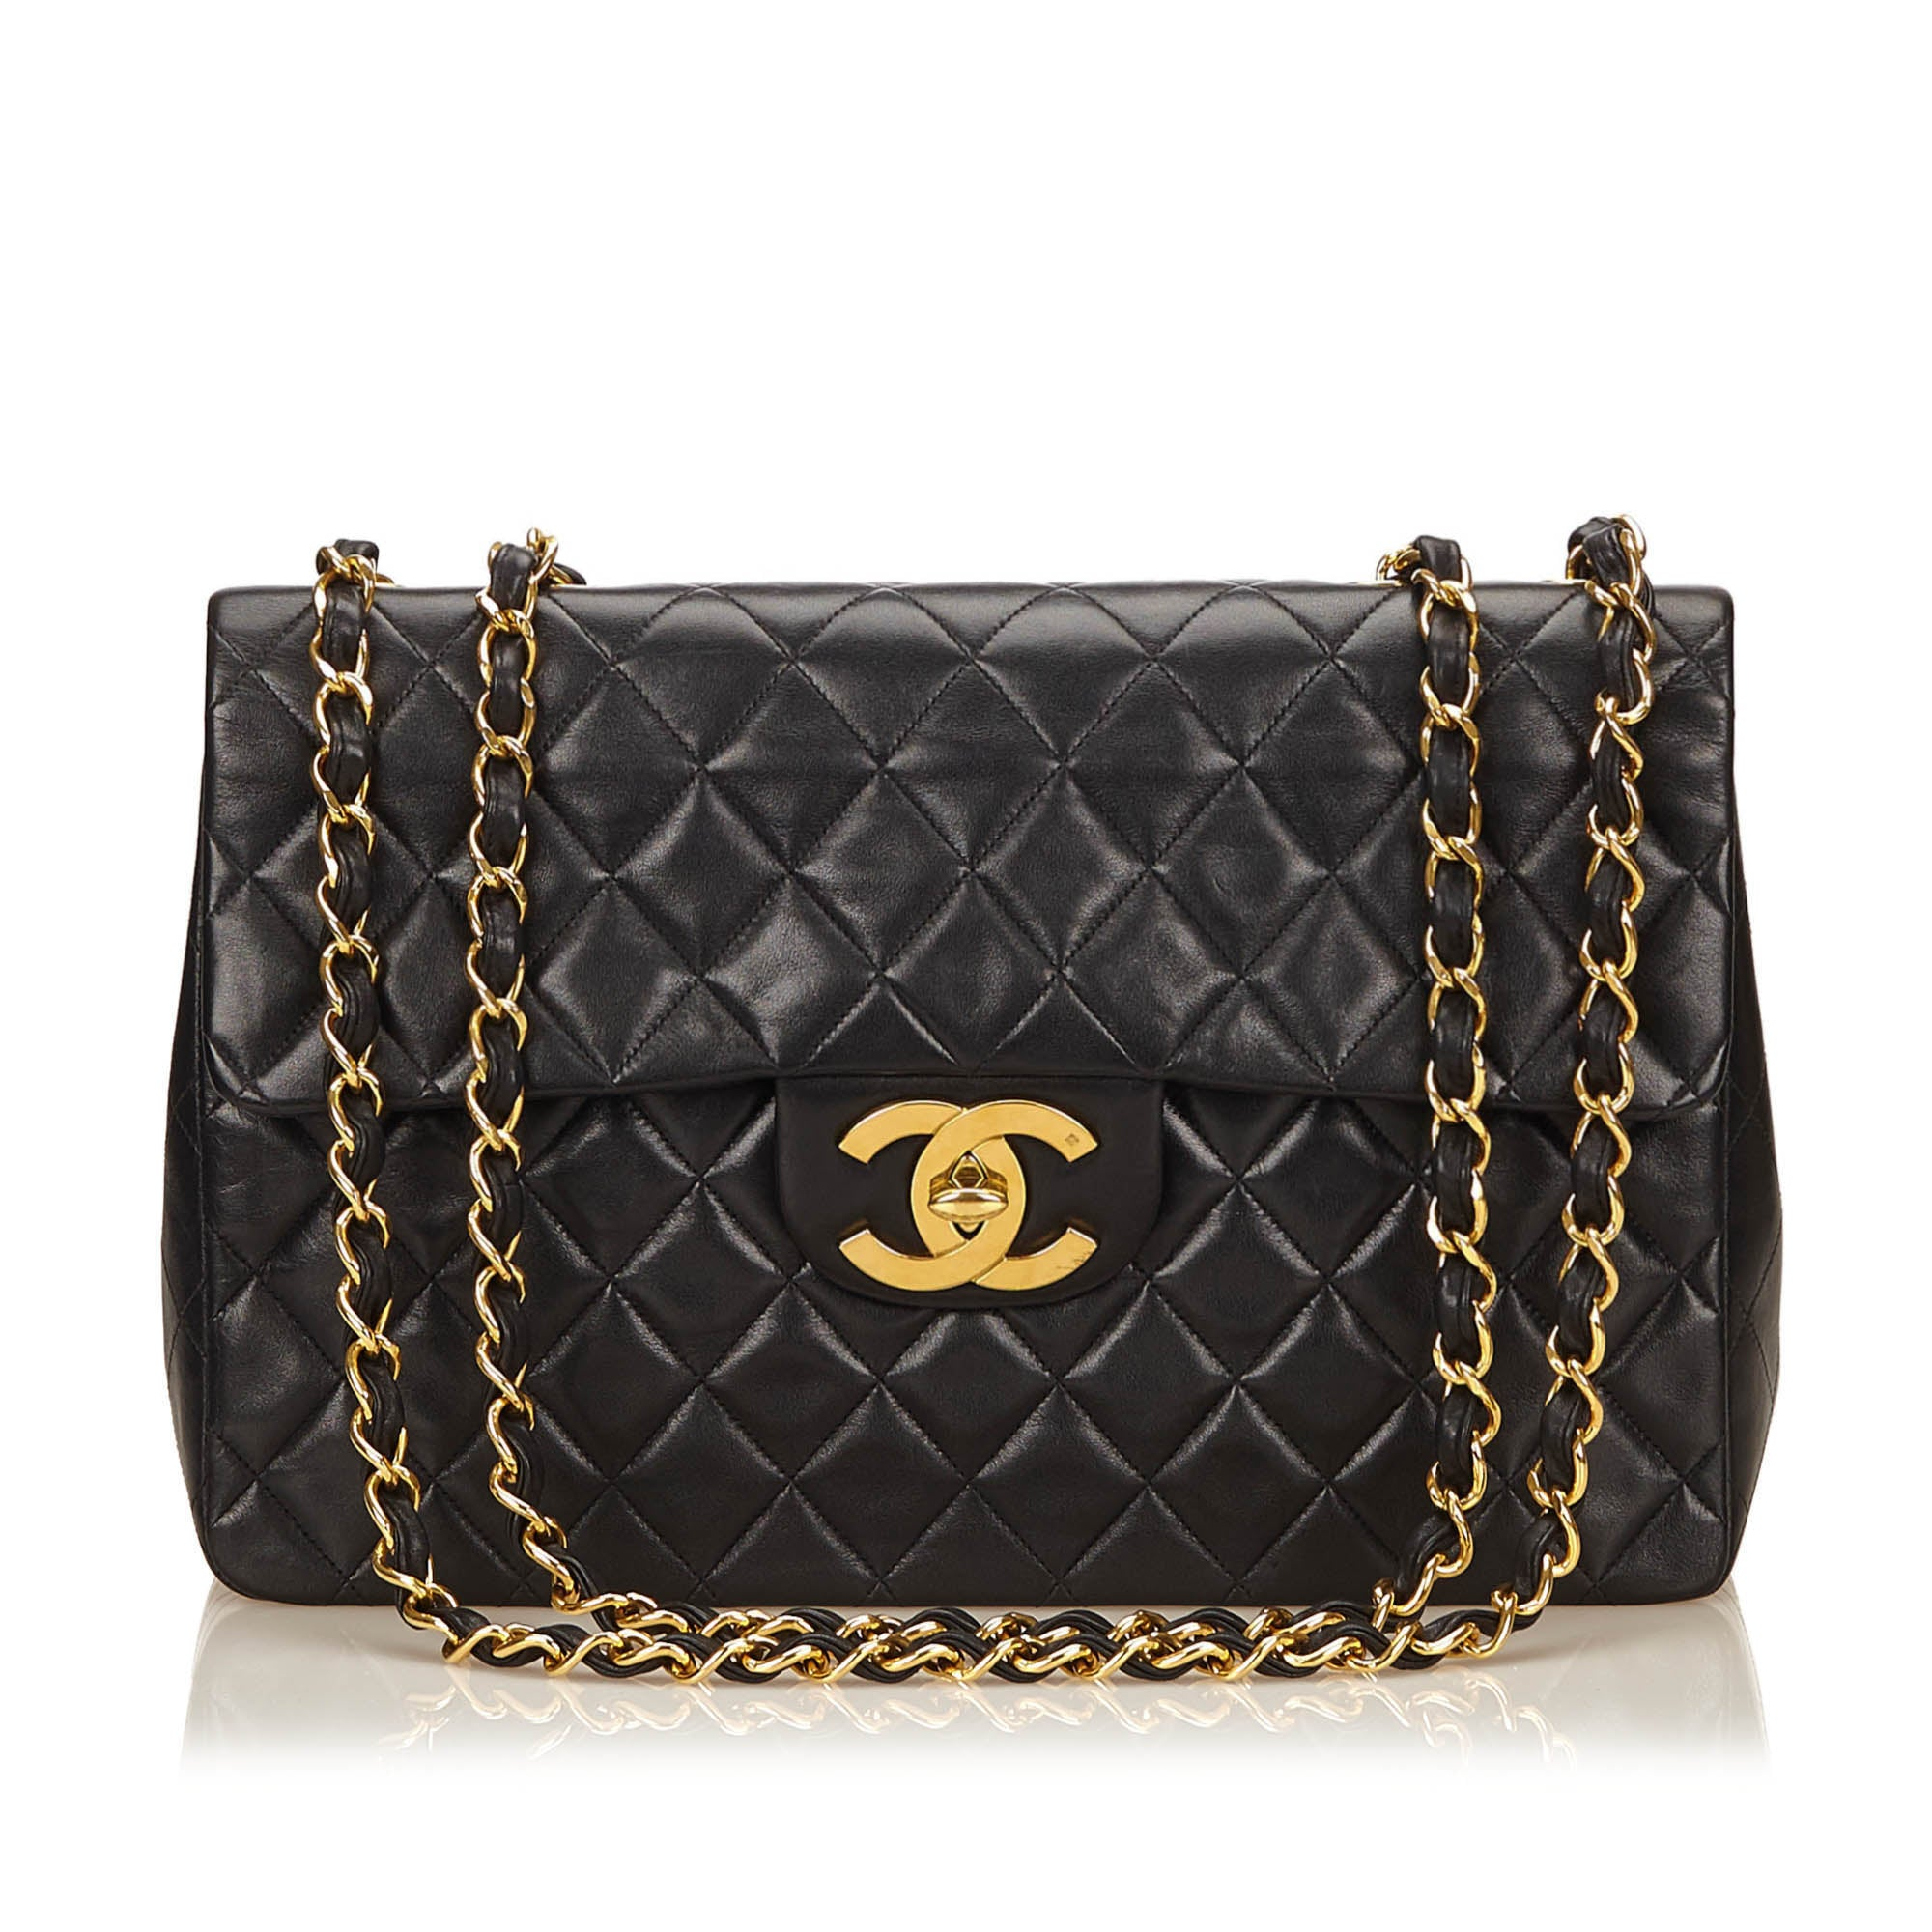 9184e9a2f21a Black Maxi Lambskin Classic Flap Bag · Chanel